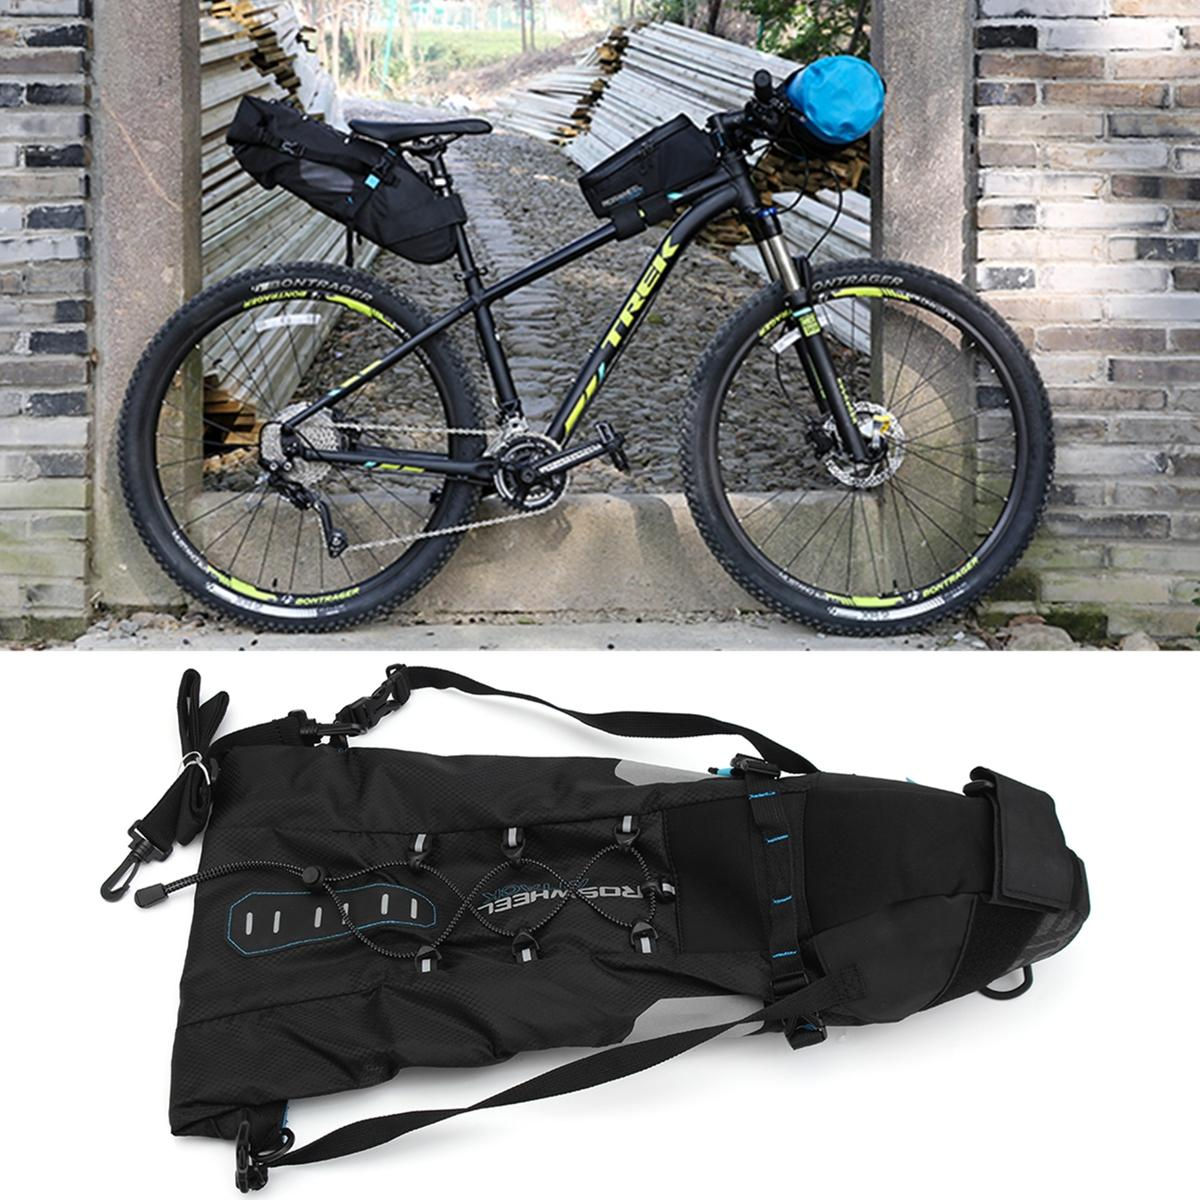 New Arrival 10L Waterproof Bike Tail Bag Seat Rear Saddle Pouch Black Outdoor Cycling Accessory sa212 saddle bag motorcycle side bag helmet bag free shippingkorea japan e ems